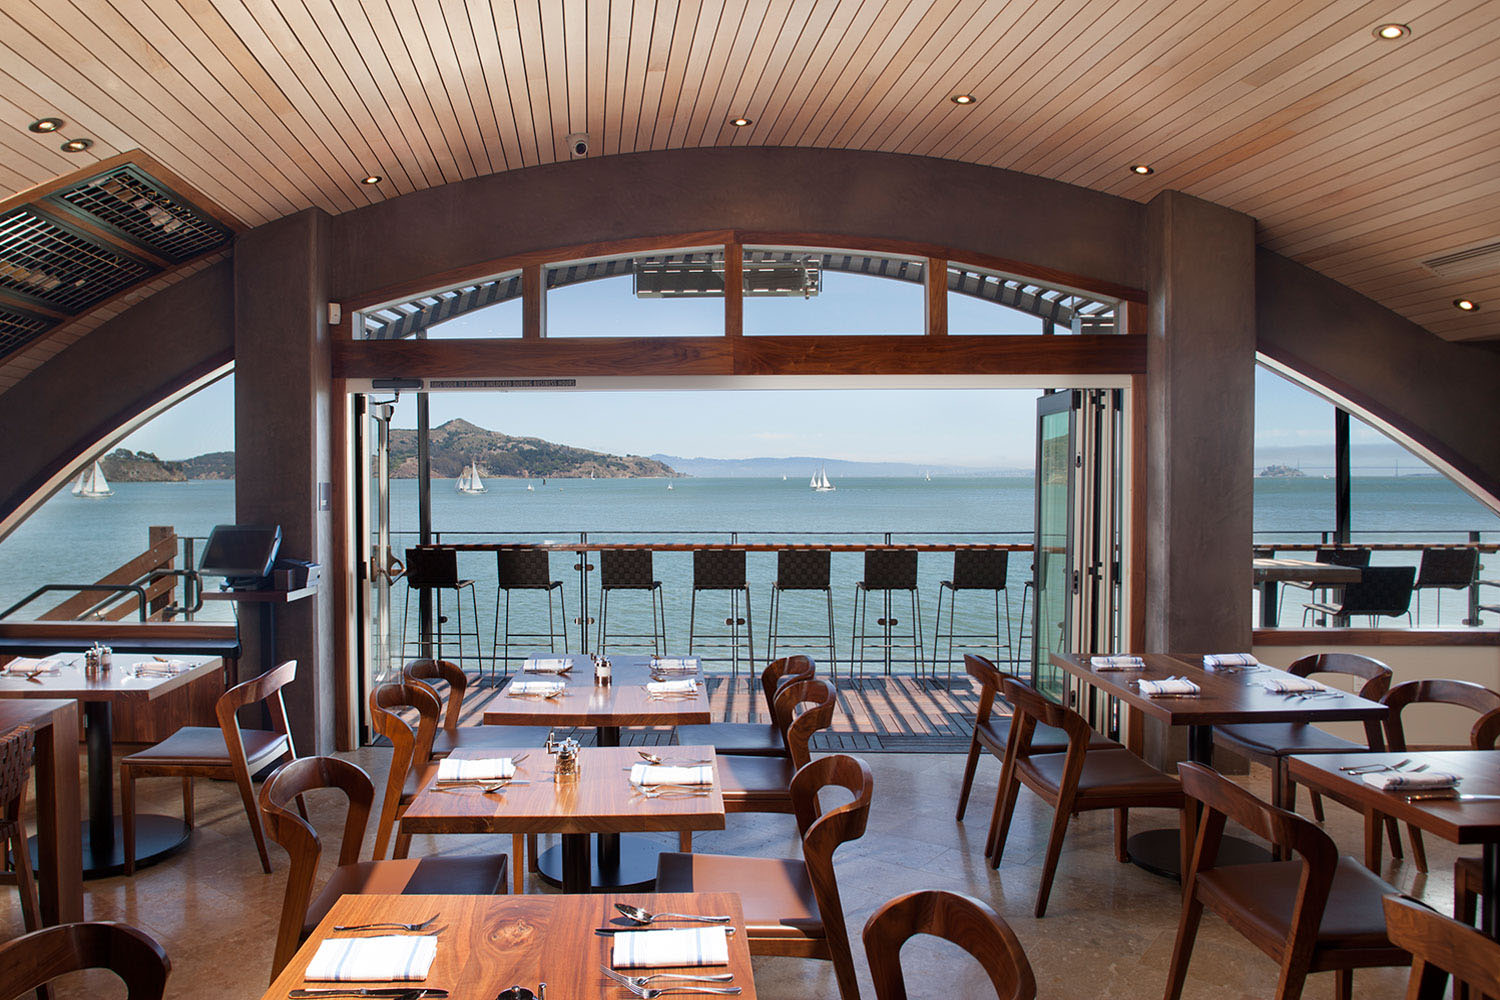 Restaurant Overlooking San Francisco Bay